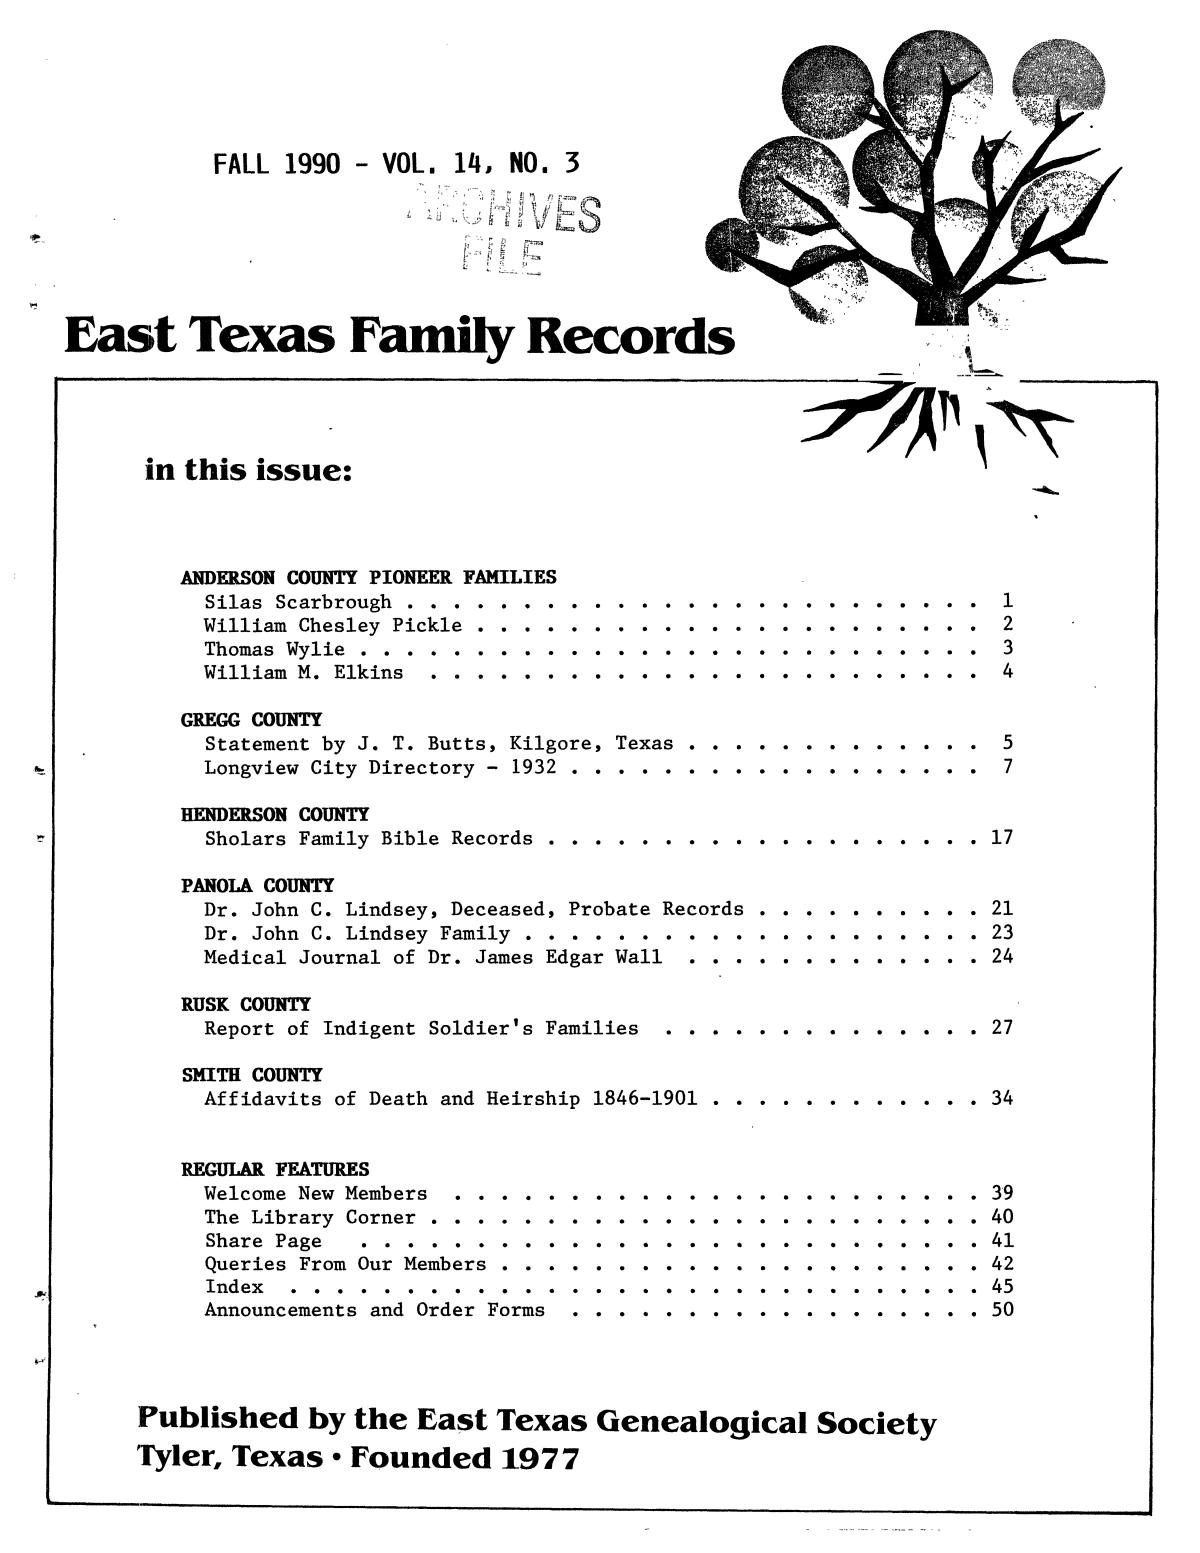 East Texas Family Records, Volume 14, Number 3, Fall 1990                                                                                                      Front Cover